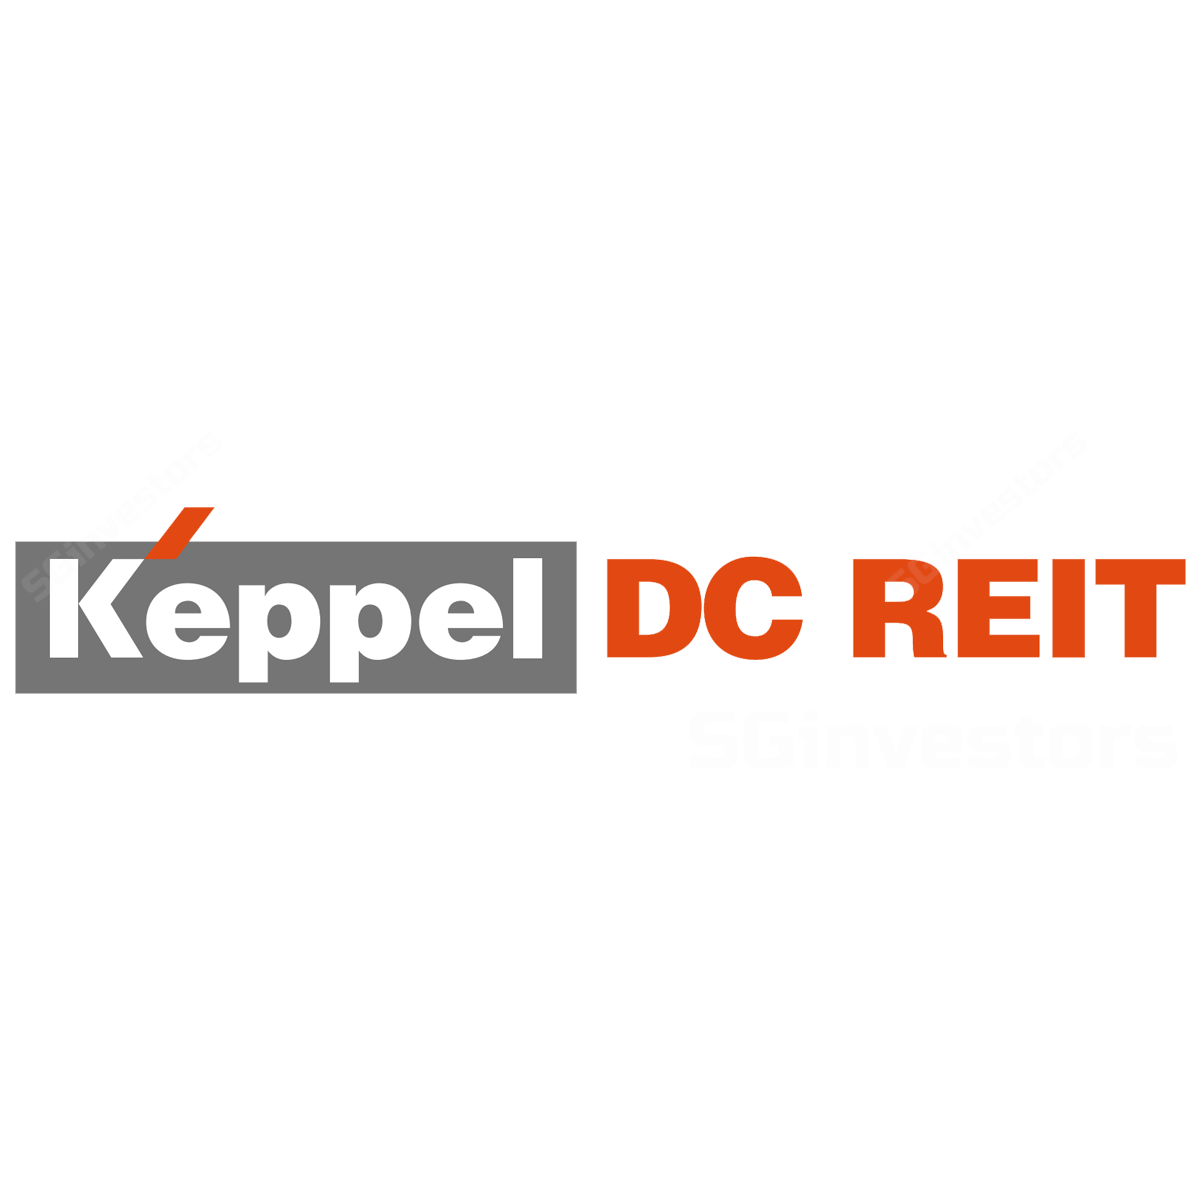 Keppel DC REIT - DBS Group Research Research 2018-07-18: Hungry For More